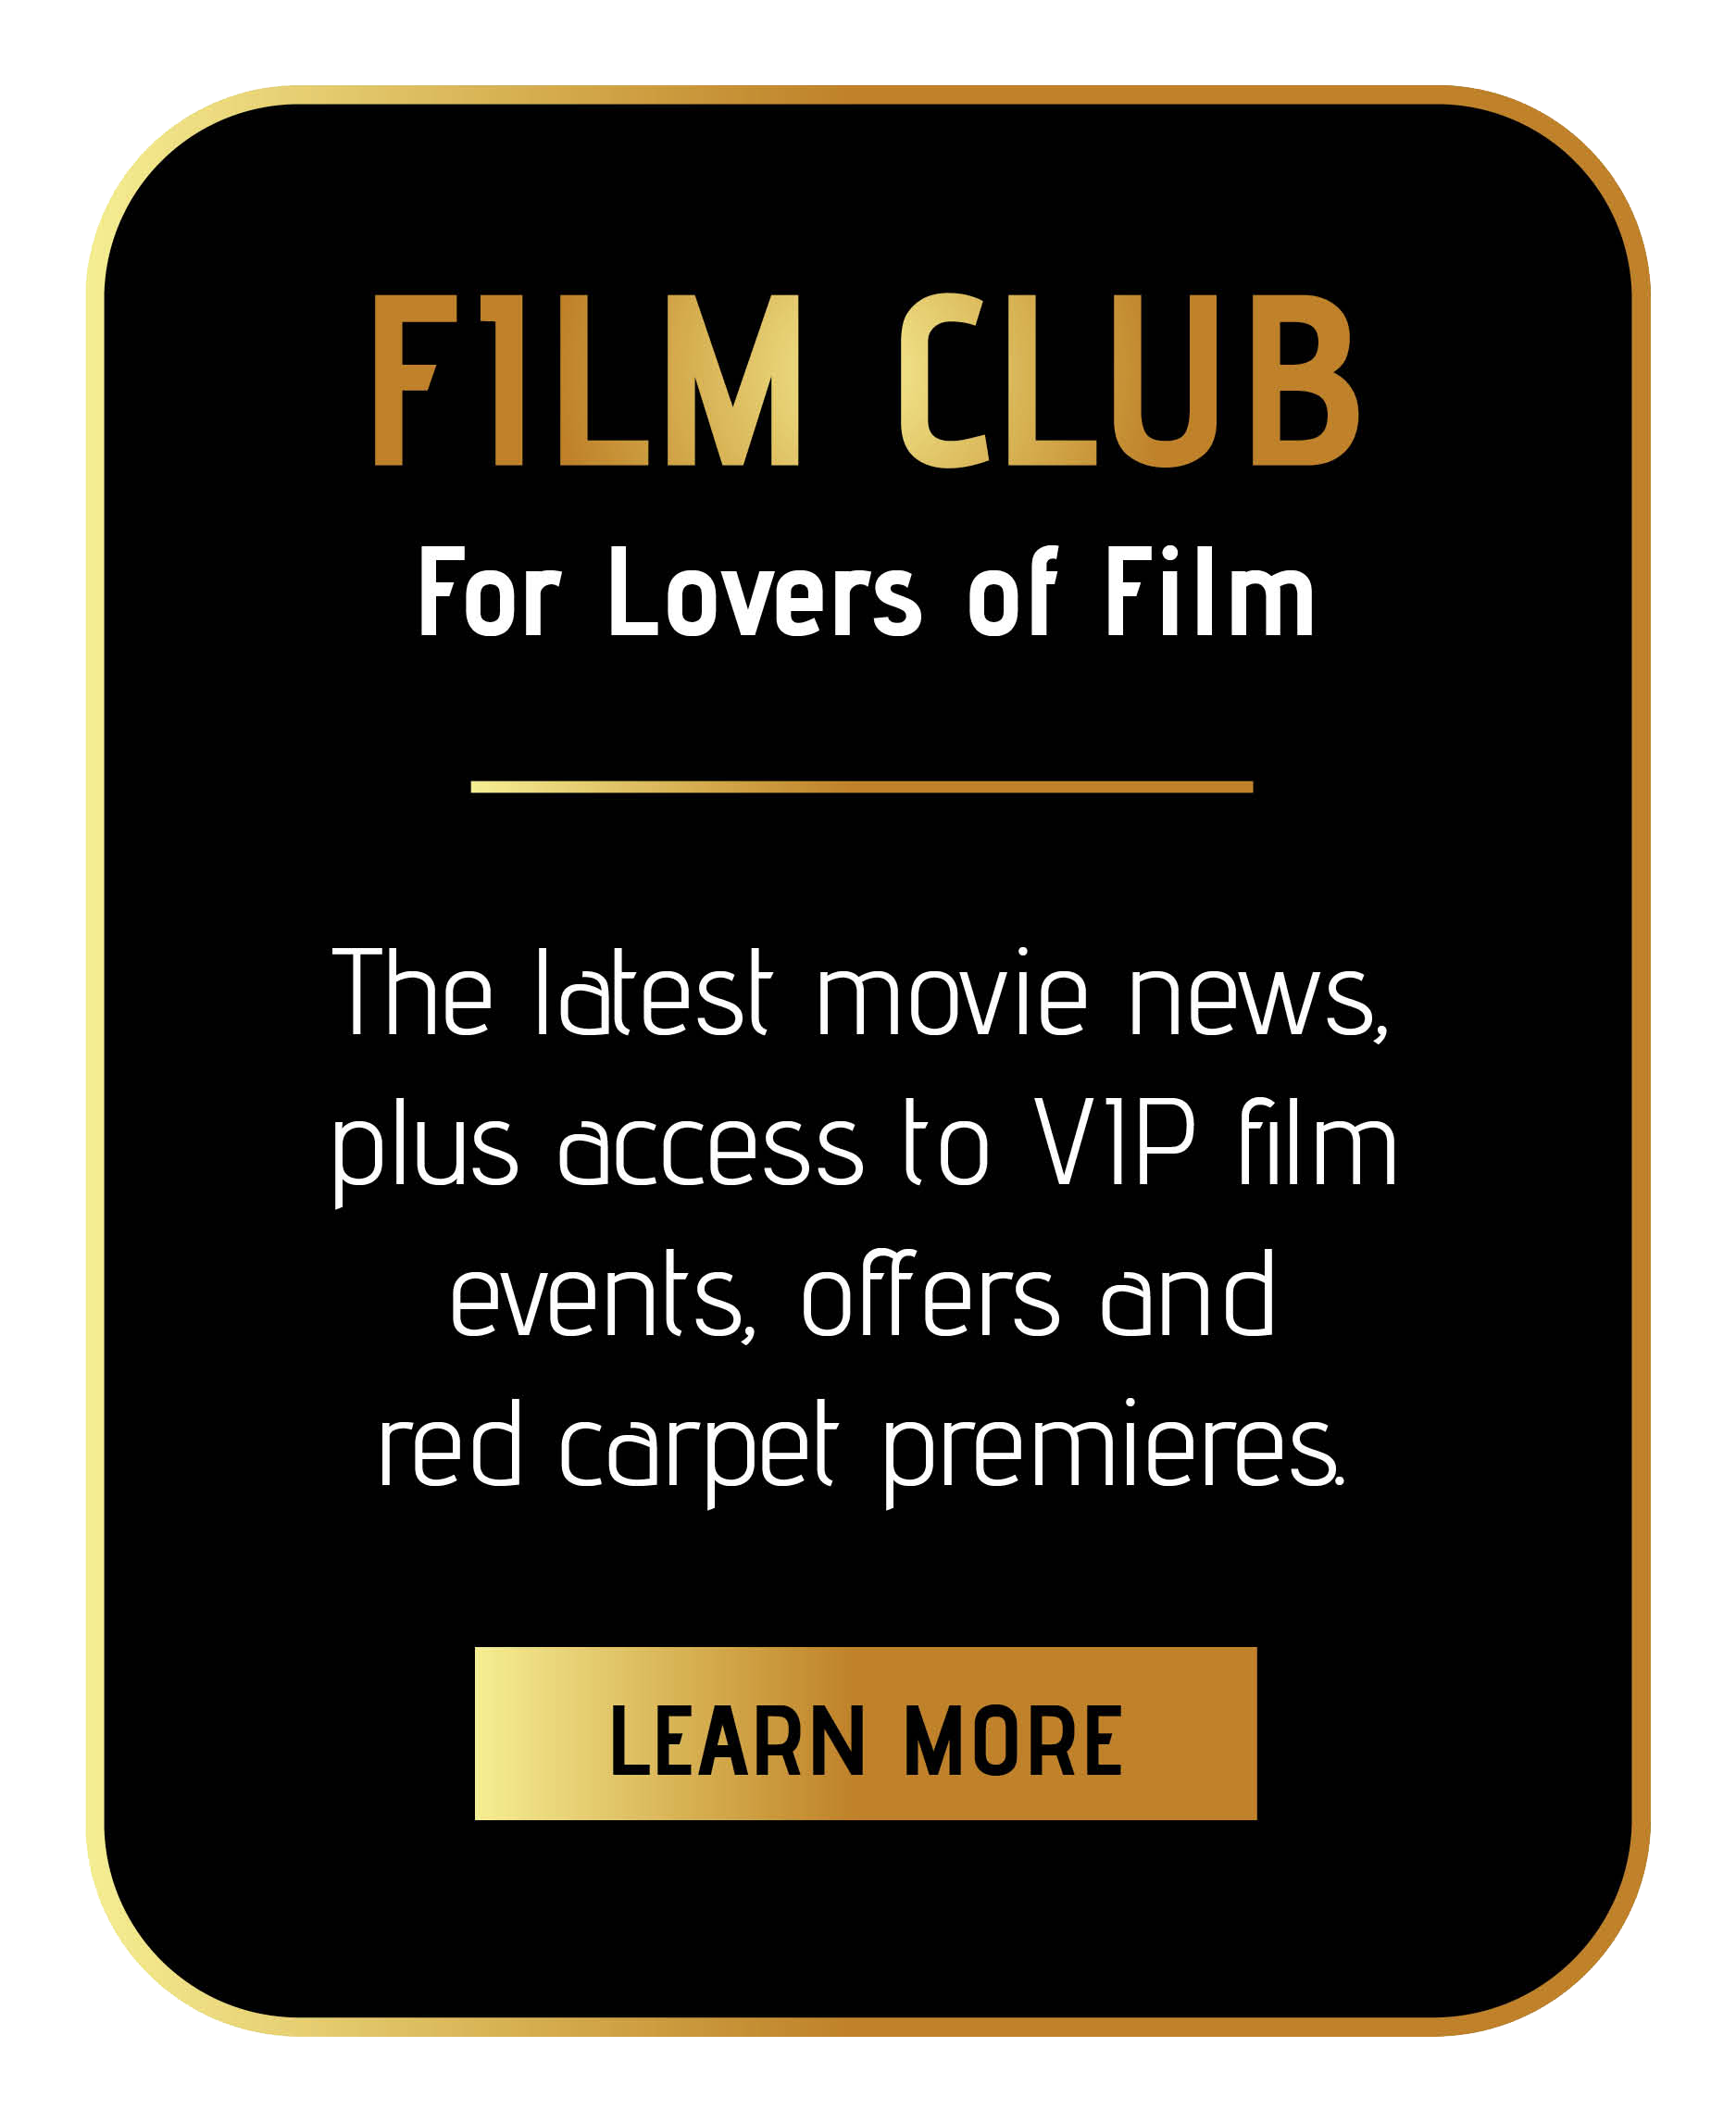 join sincura film club membership for access to the latest film premieres, cannes film festival, evnets and backstage passes